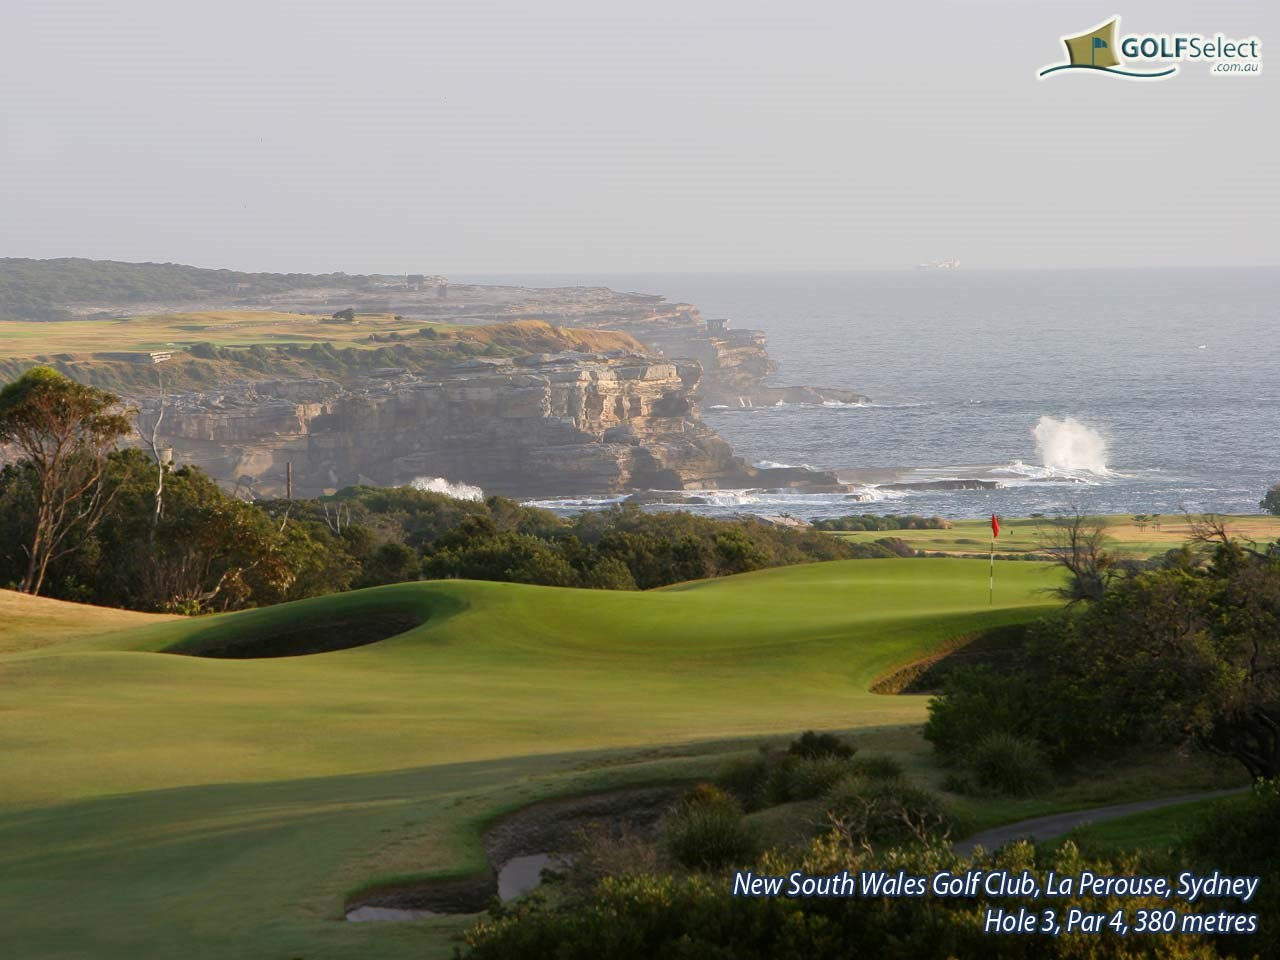 the new south wales golf club la perouse new south wales 2036 golfselect. Black Bedroom Furniture Sets. Home Design Ideas